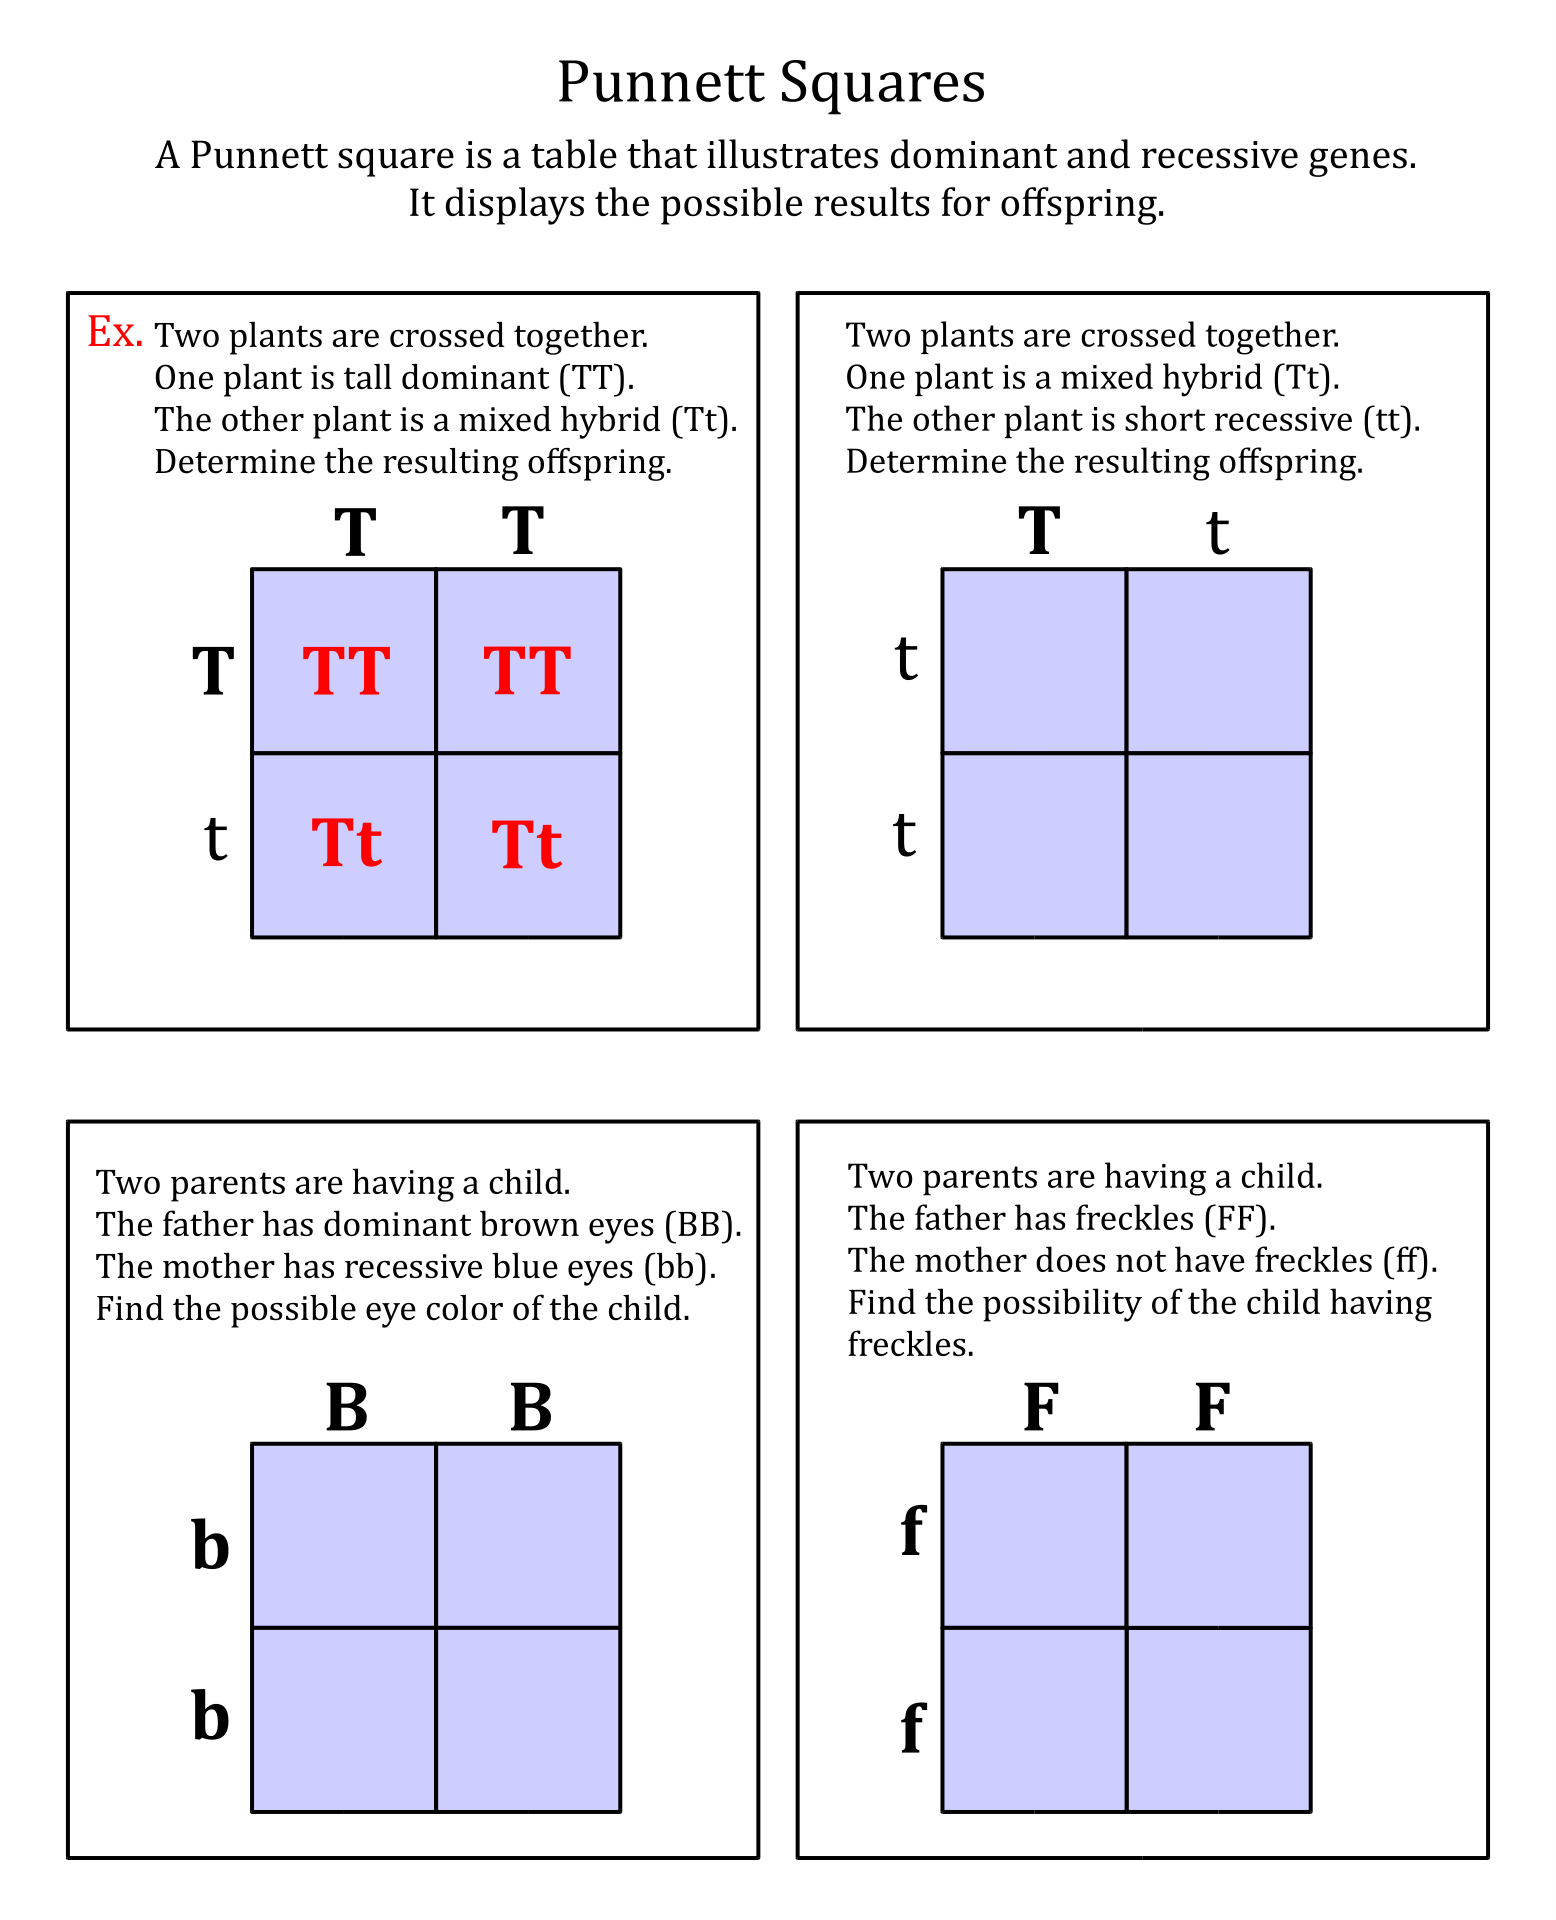 Punnett Square Worksheet With Answers Free Worksheets Library – Punnet Square Worksheet